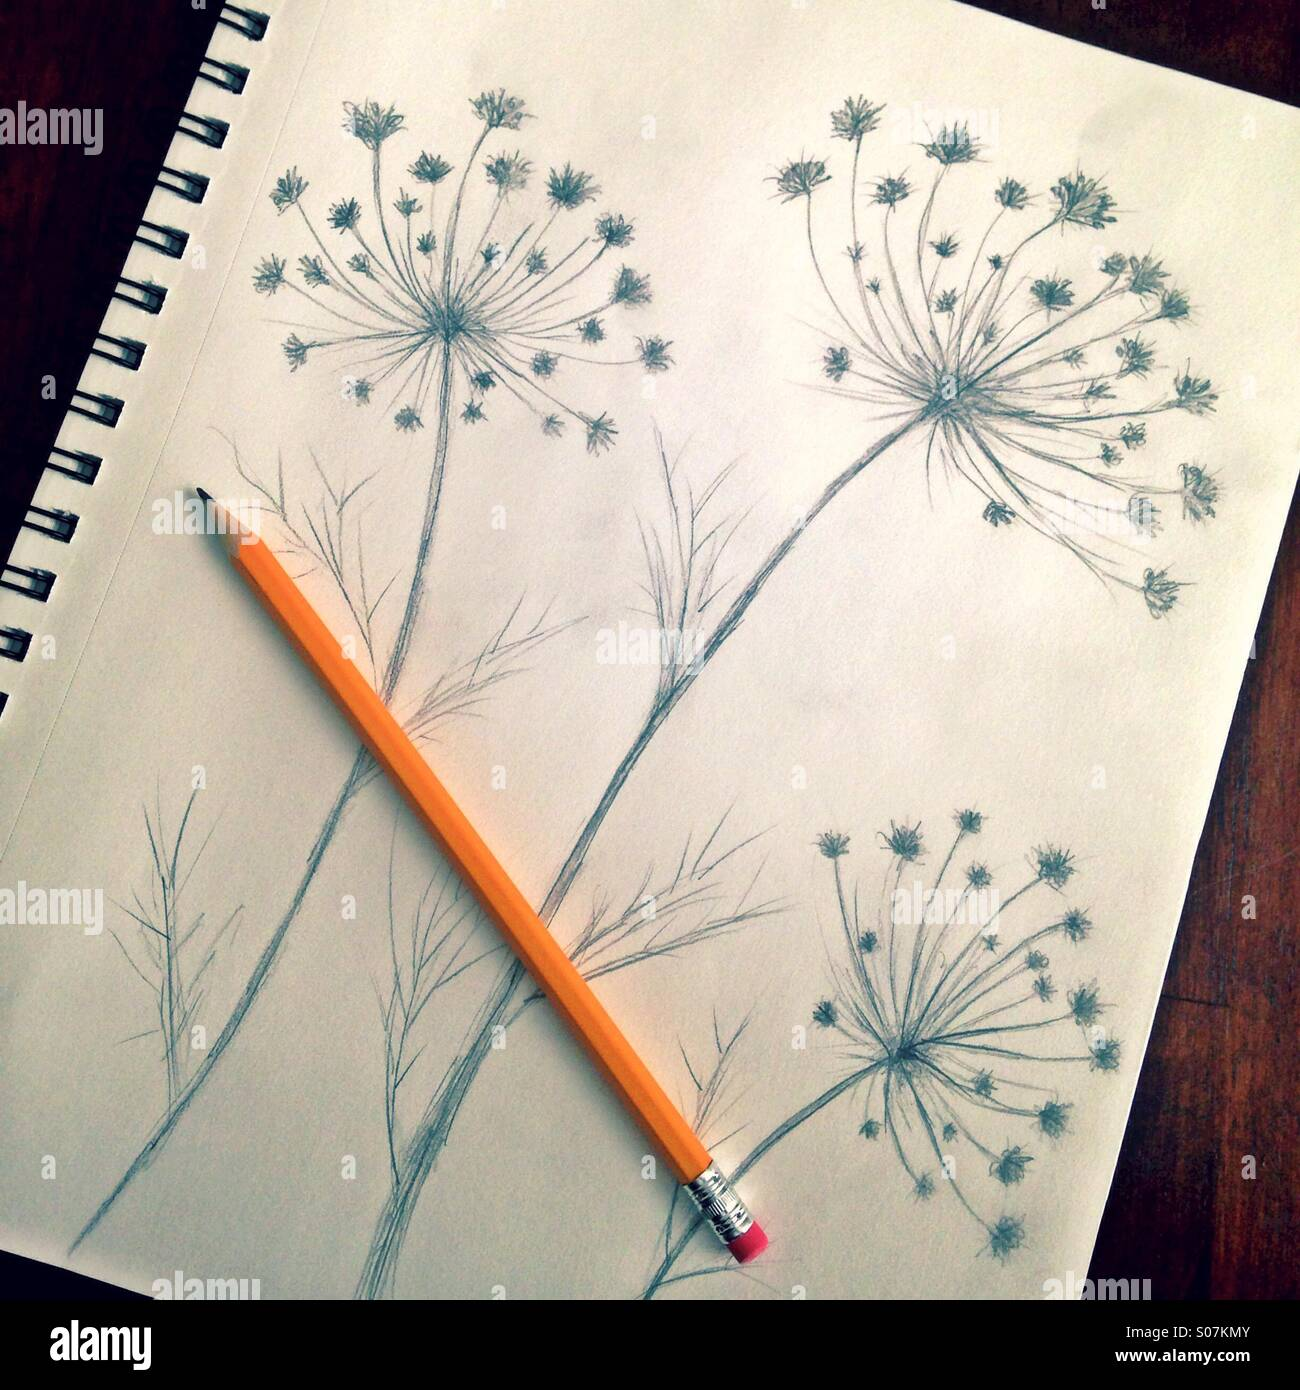 Pencil Drawing Flowers High Resolution Stock Photography And Images Alamy